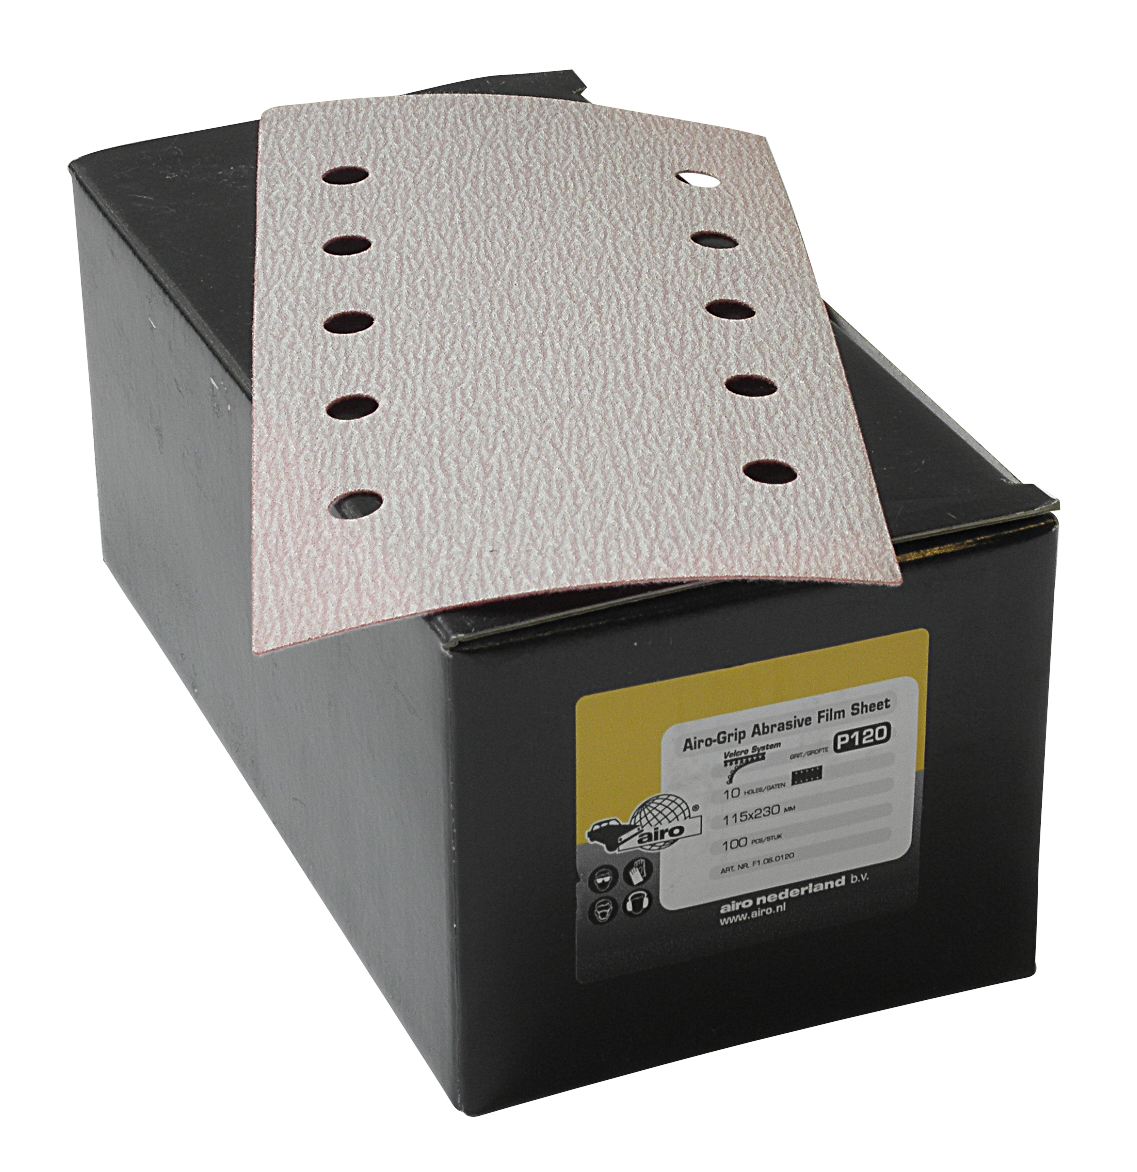 Airo Grip Abrasive Film Sheet